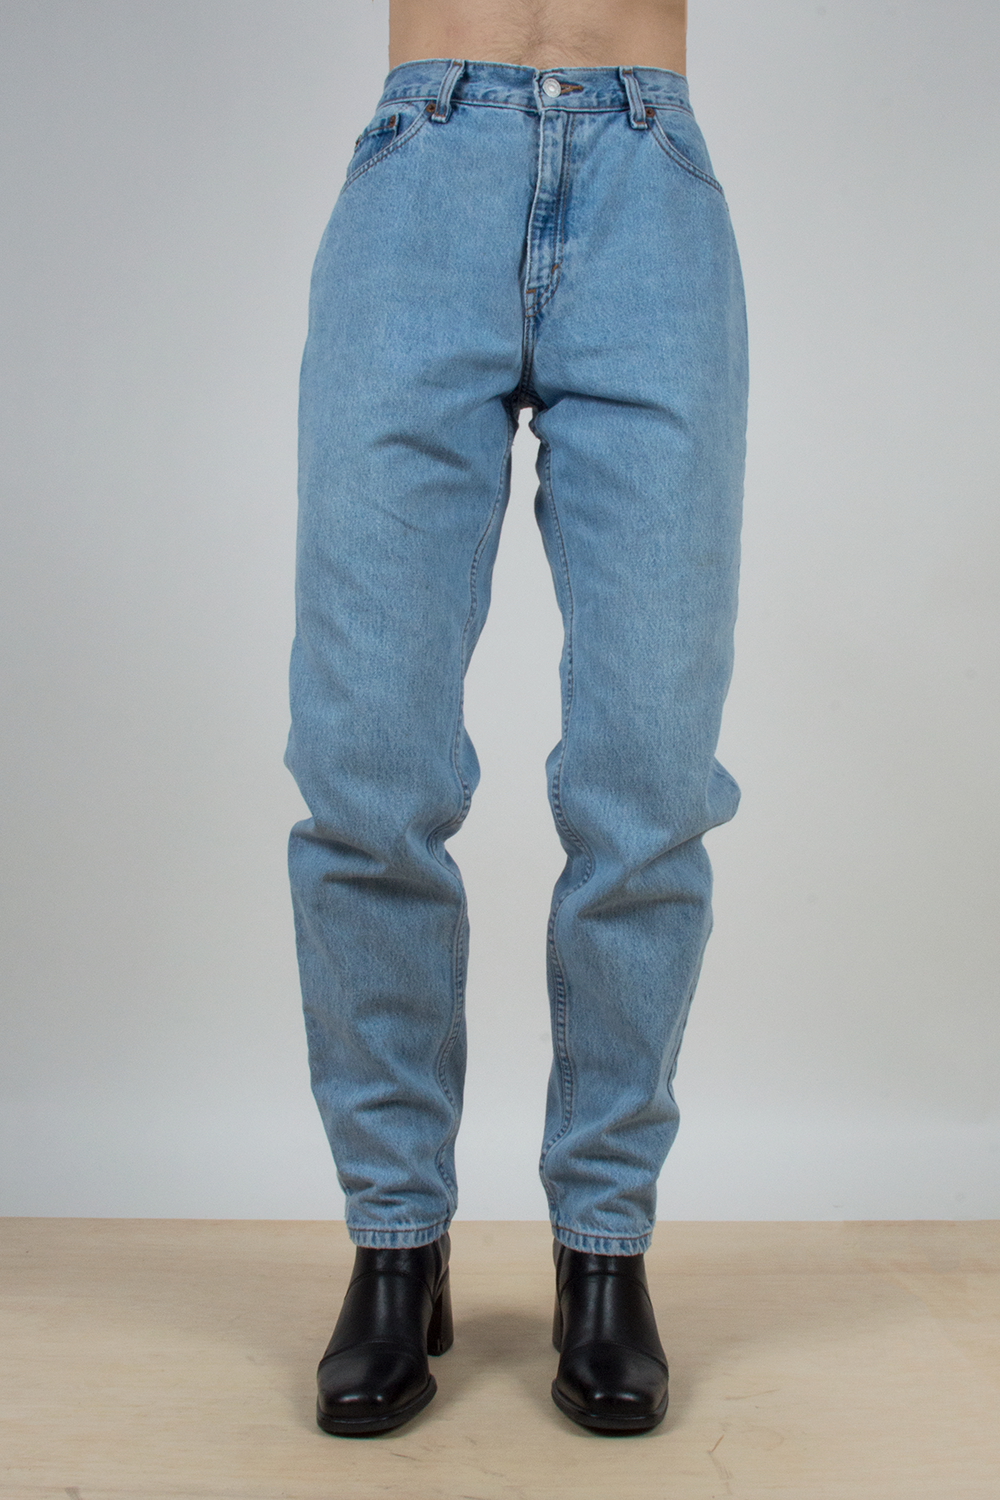 vintage levi's 550 tapered jeans